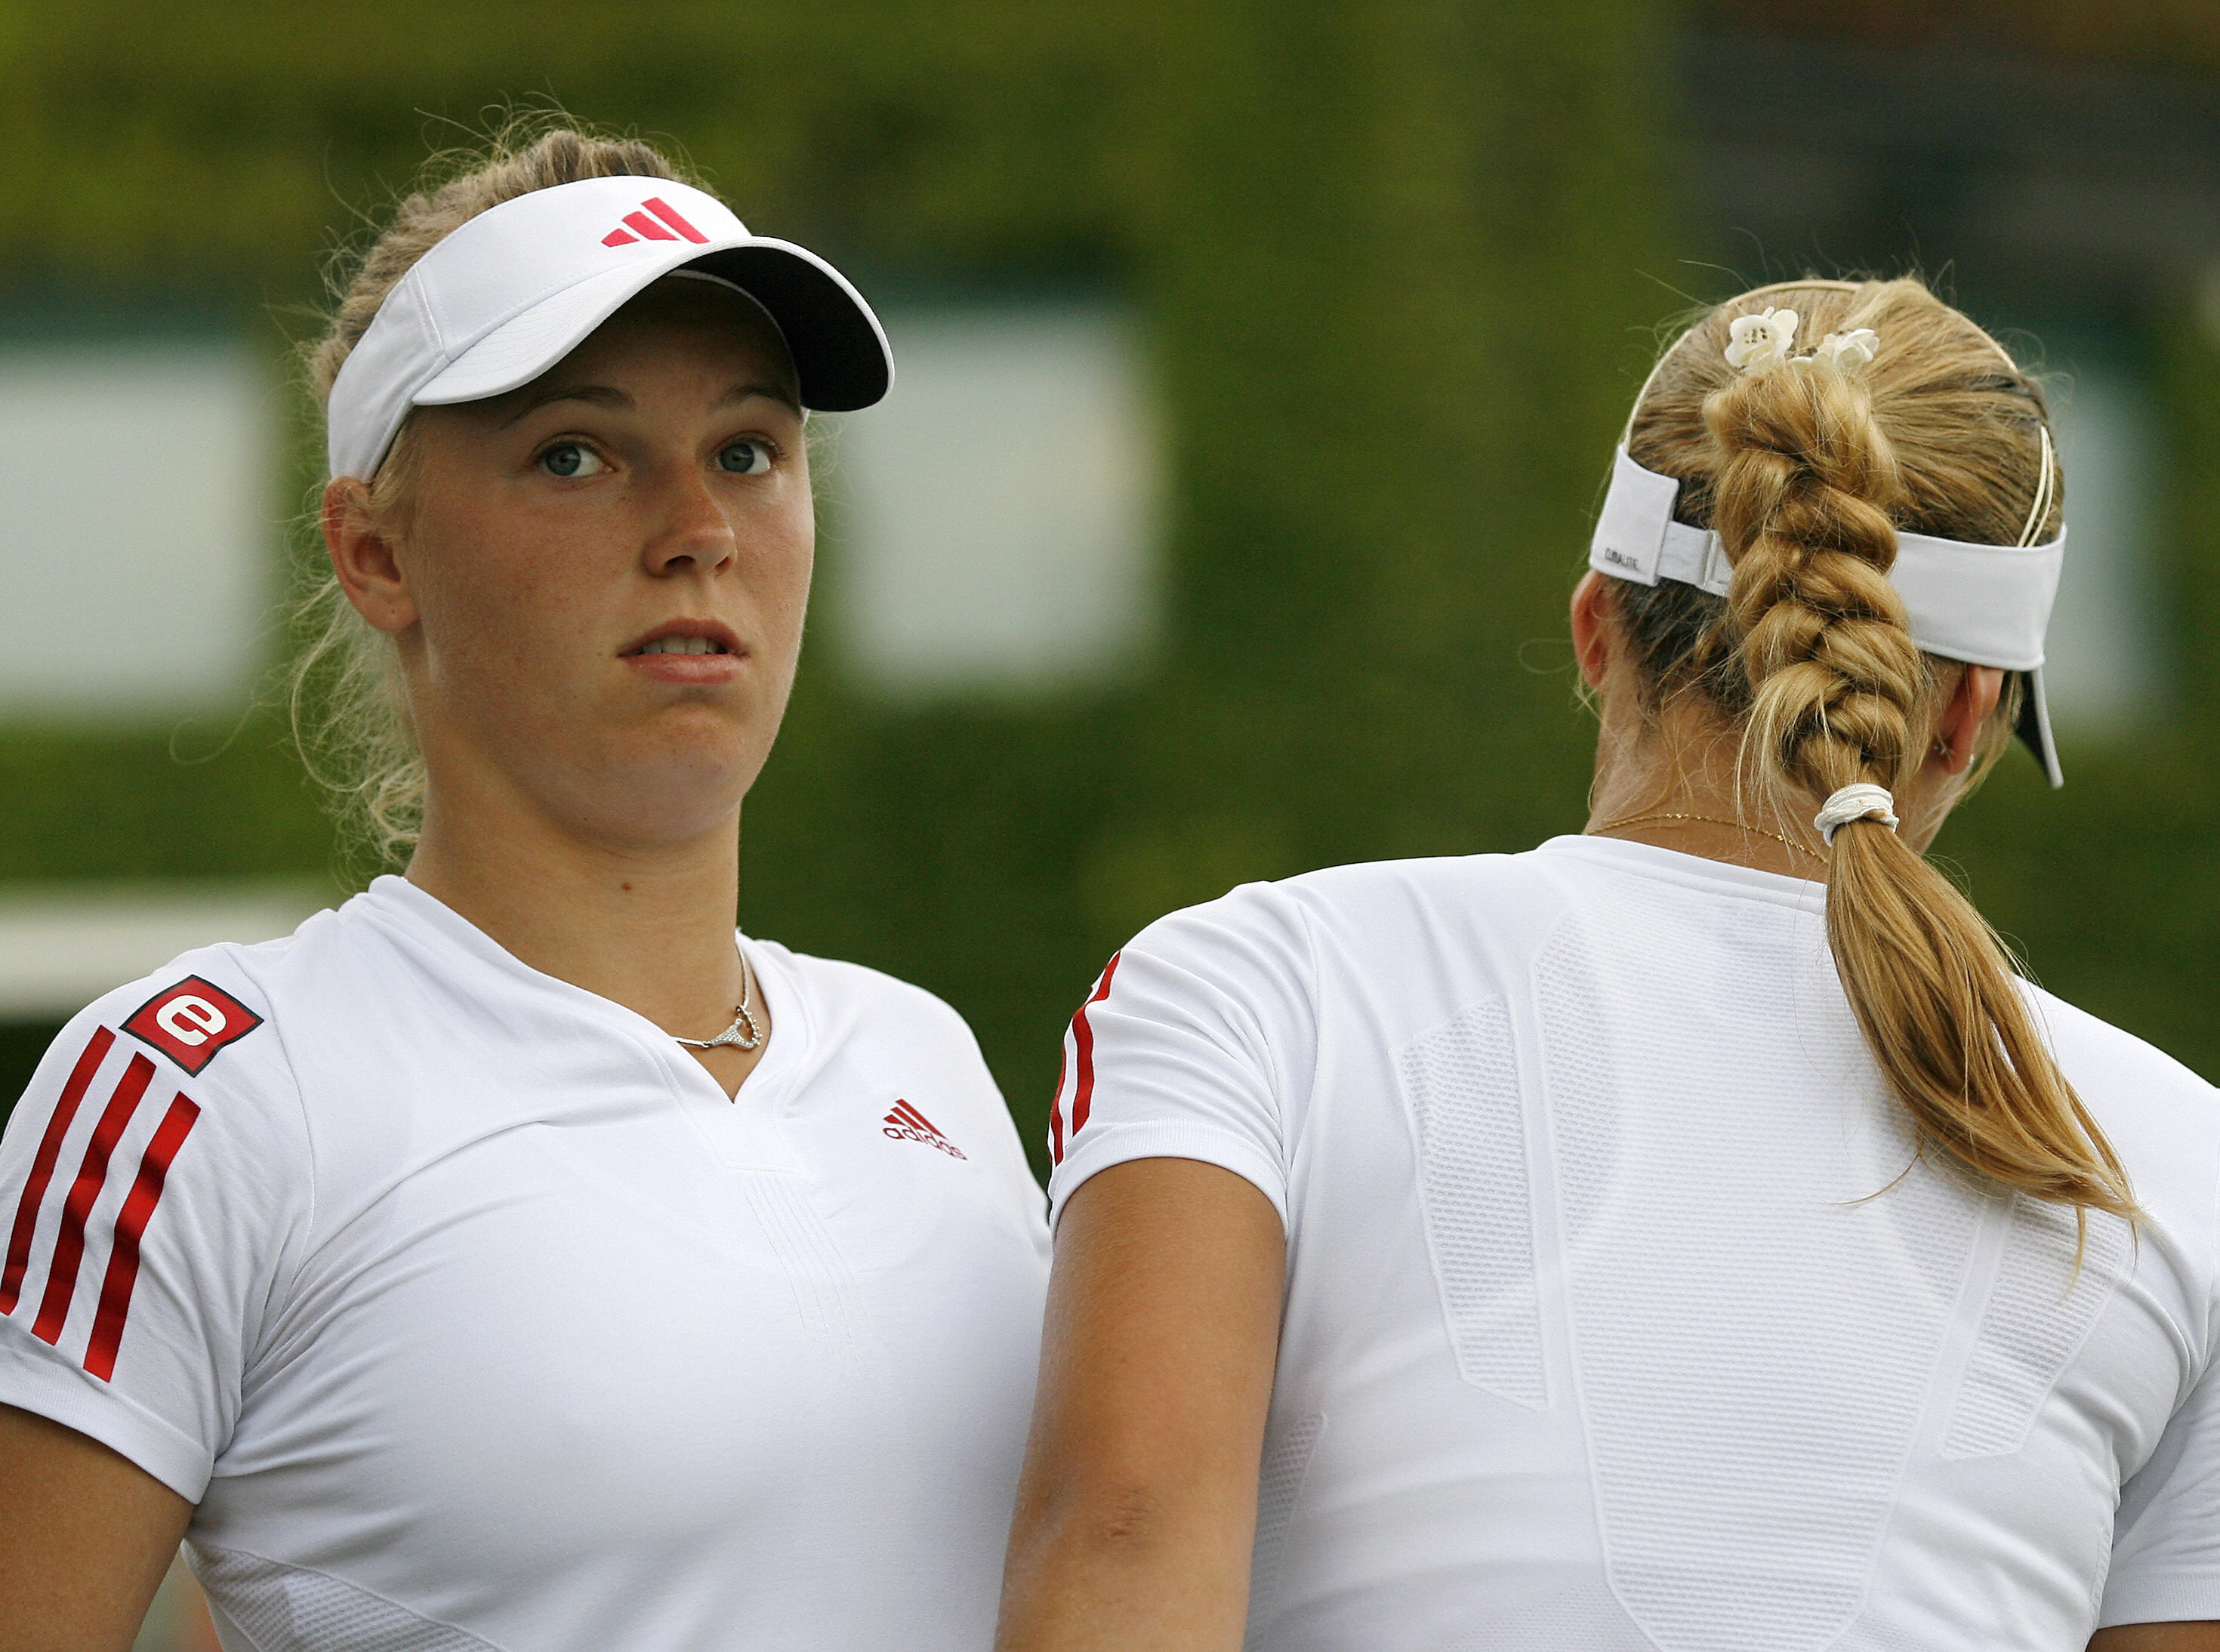 ...especially when it was involved in one of the more infamous changeover bumps between Wozniacki and Sabine Lisicki, who was decked out in the same kit.